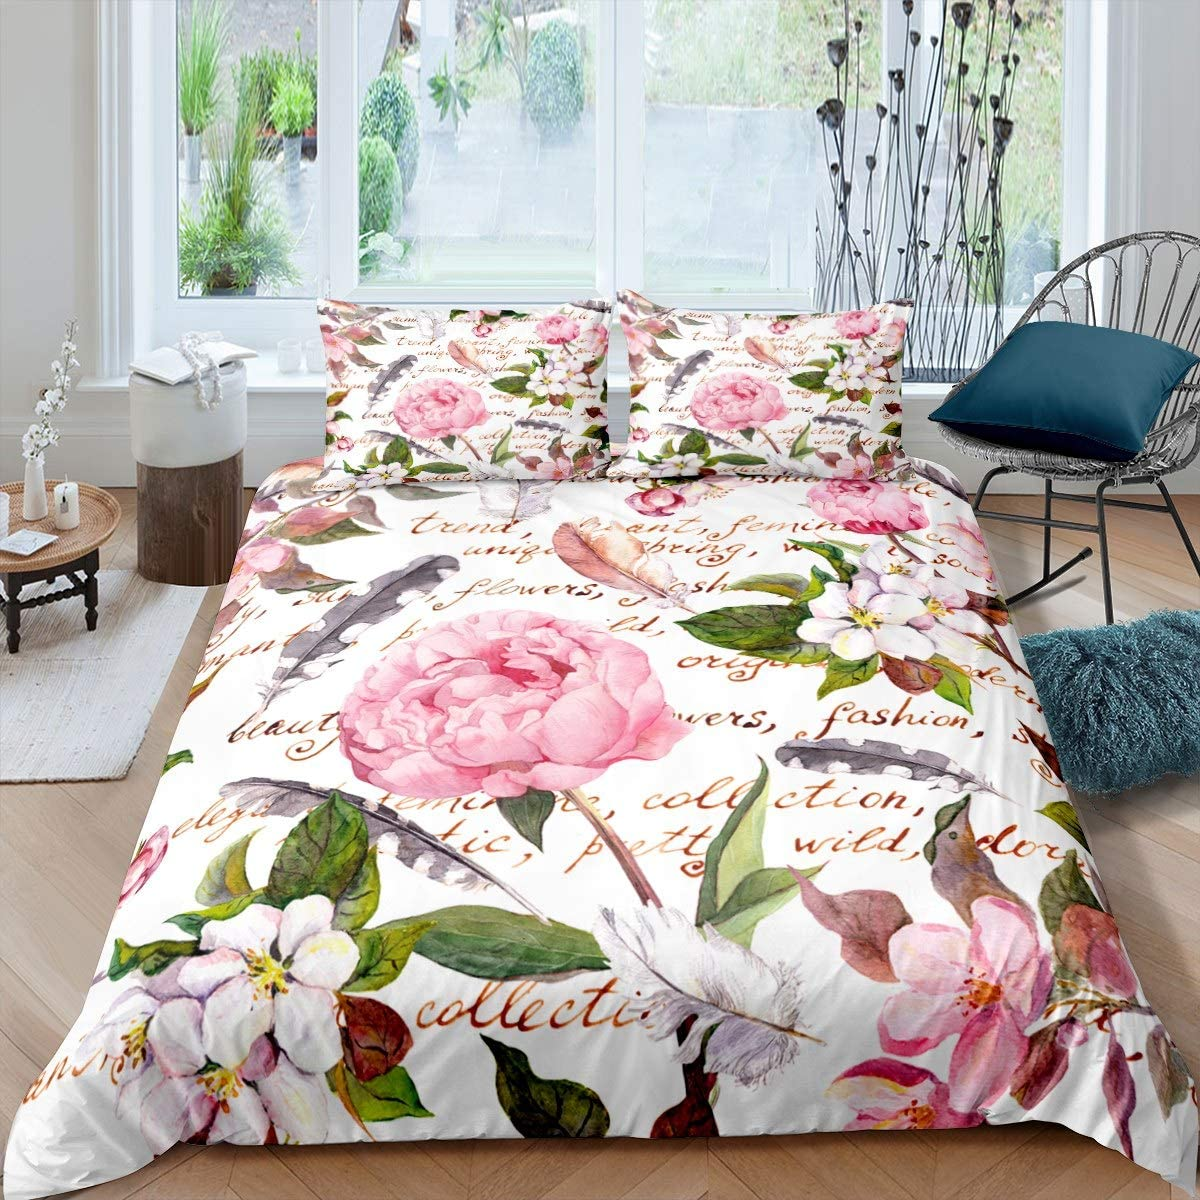 Castle Fairy Lovely Pink Flowers Microfiber Duvet Cover Twin White Kapok Green Foliage Bedding Sets for Boys Girls Teen Feather Black Words 2 Pieces Comforter Sets(1 Duvet Cover 1 Pillow case)